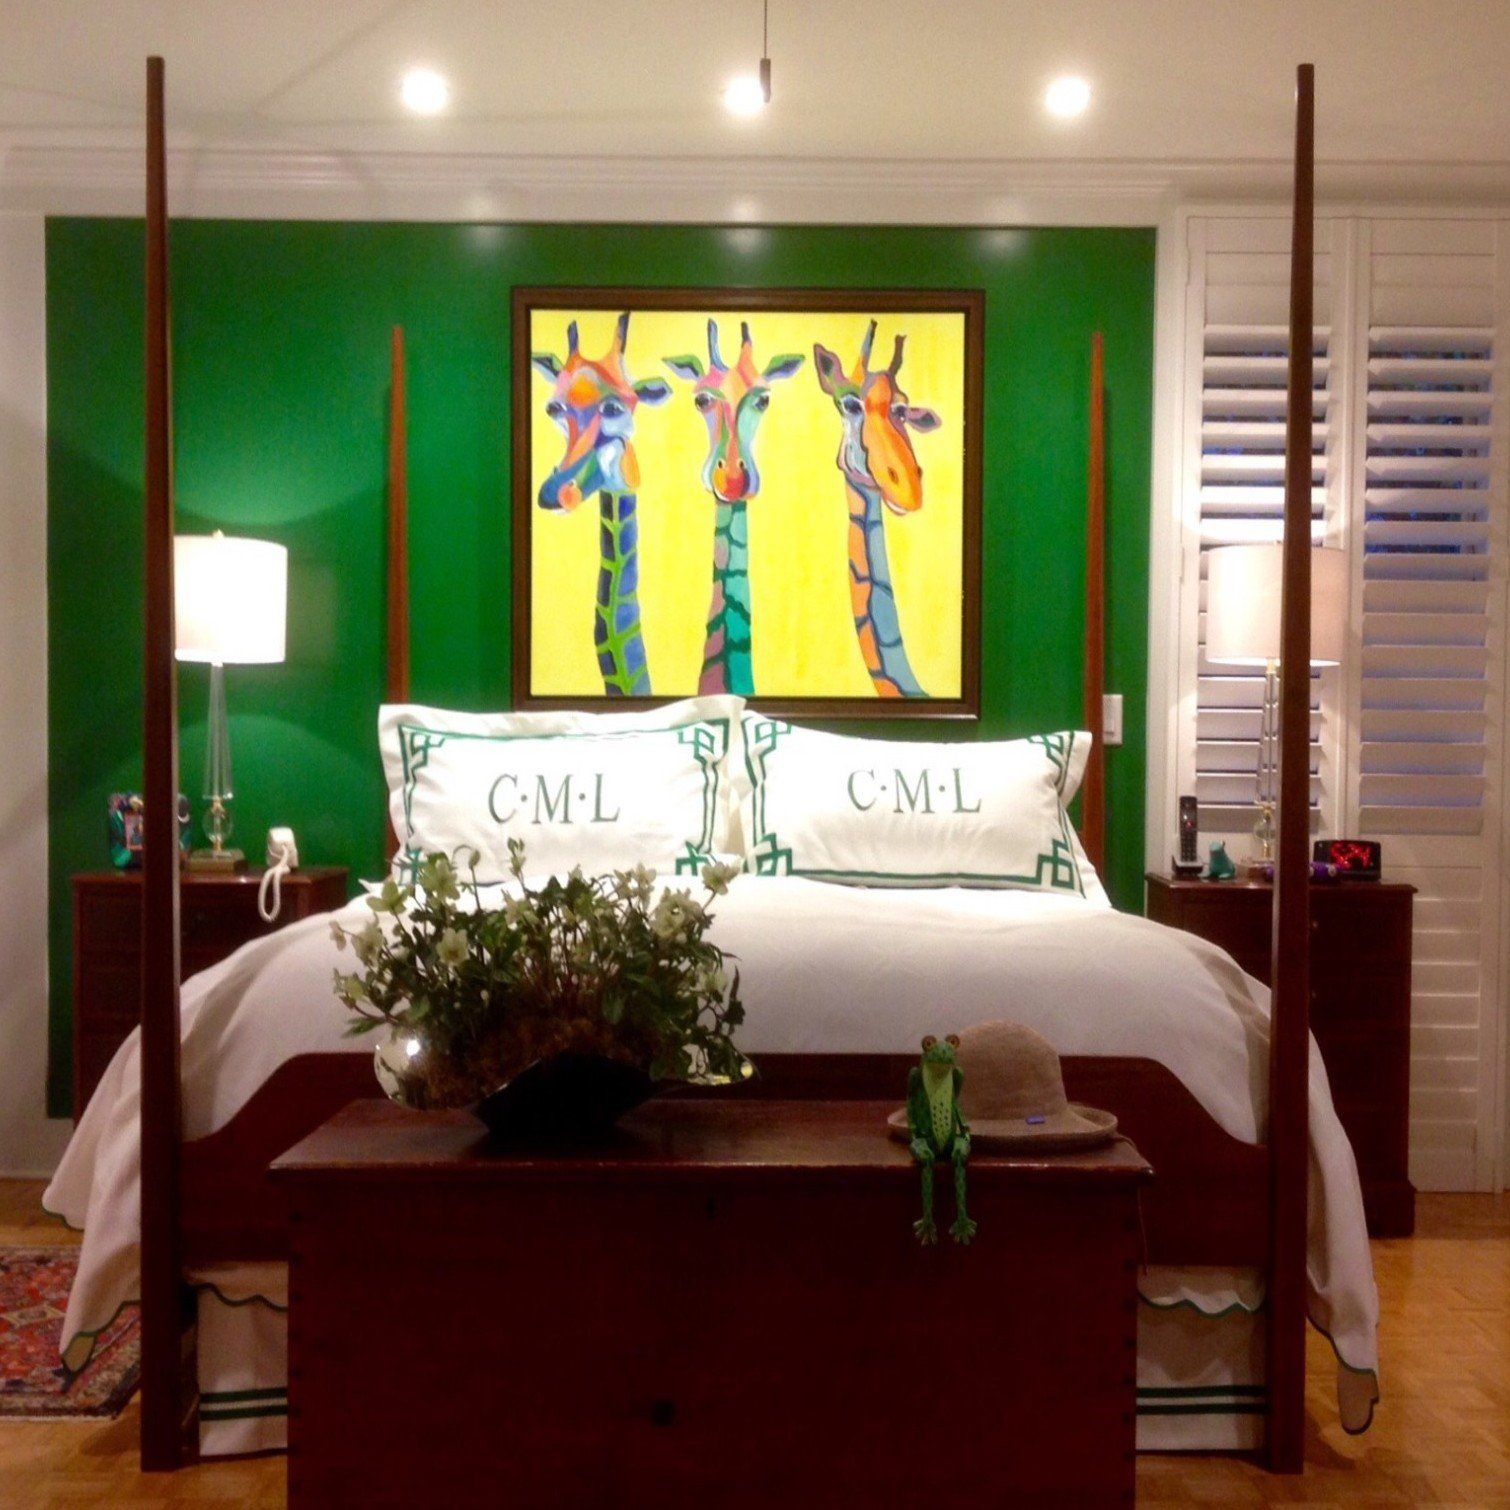 Gordon And Johnson Interior Design Kelly Green Bedrooms Green Painted Furniture Green Rooms